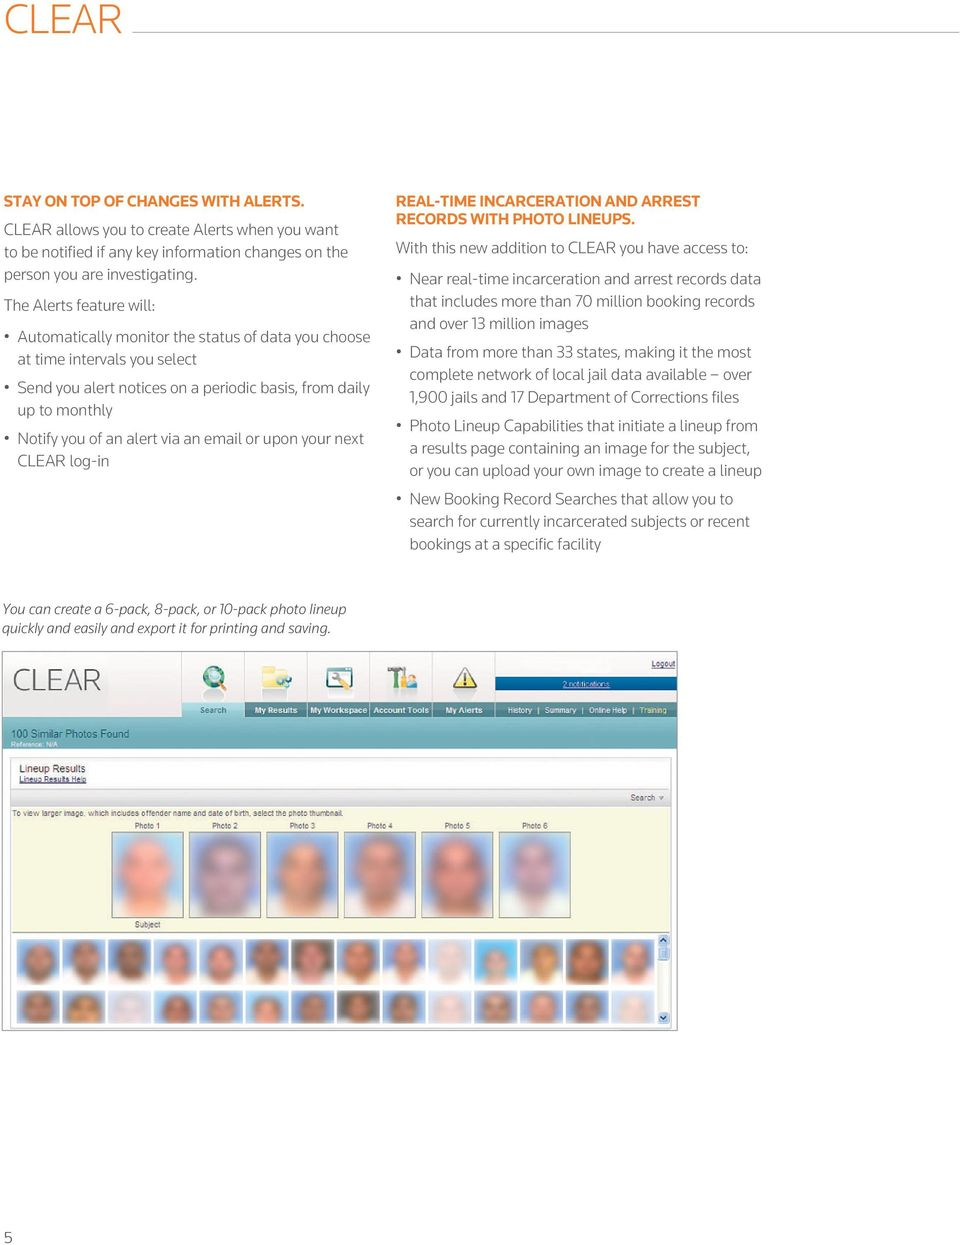 via an email or upon your next CLEAR log-in REAL-TIME INCARCERATION AND ARREST RECORDS WITH PHOTO LINEUPS.